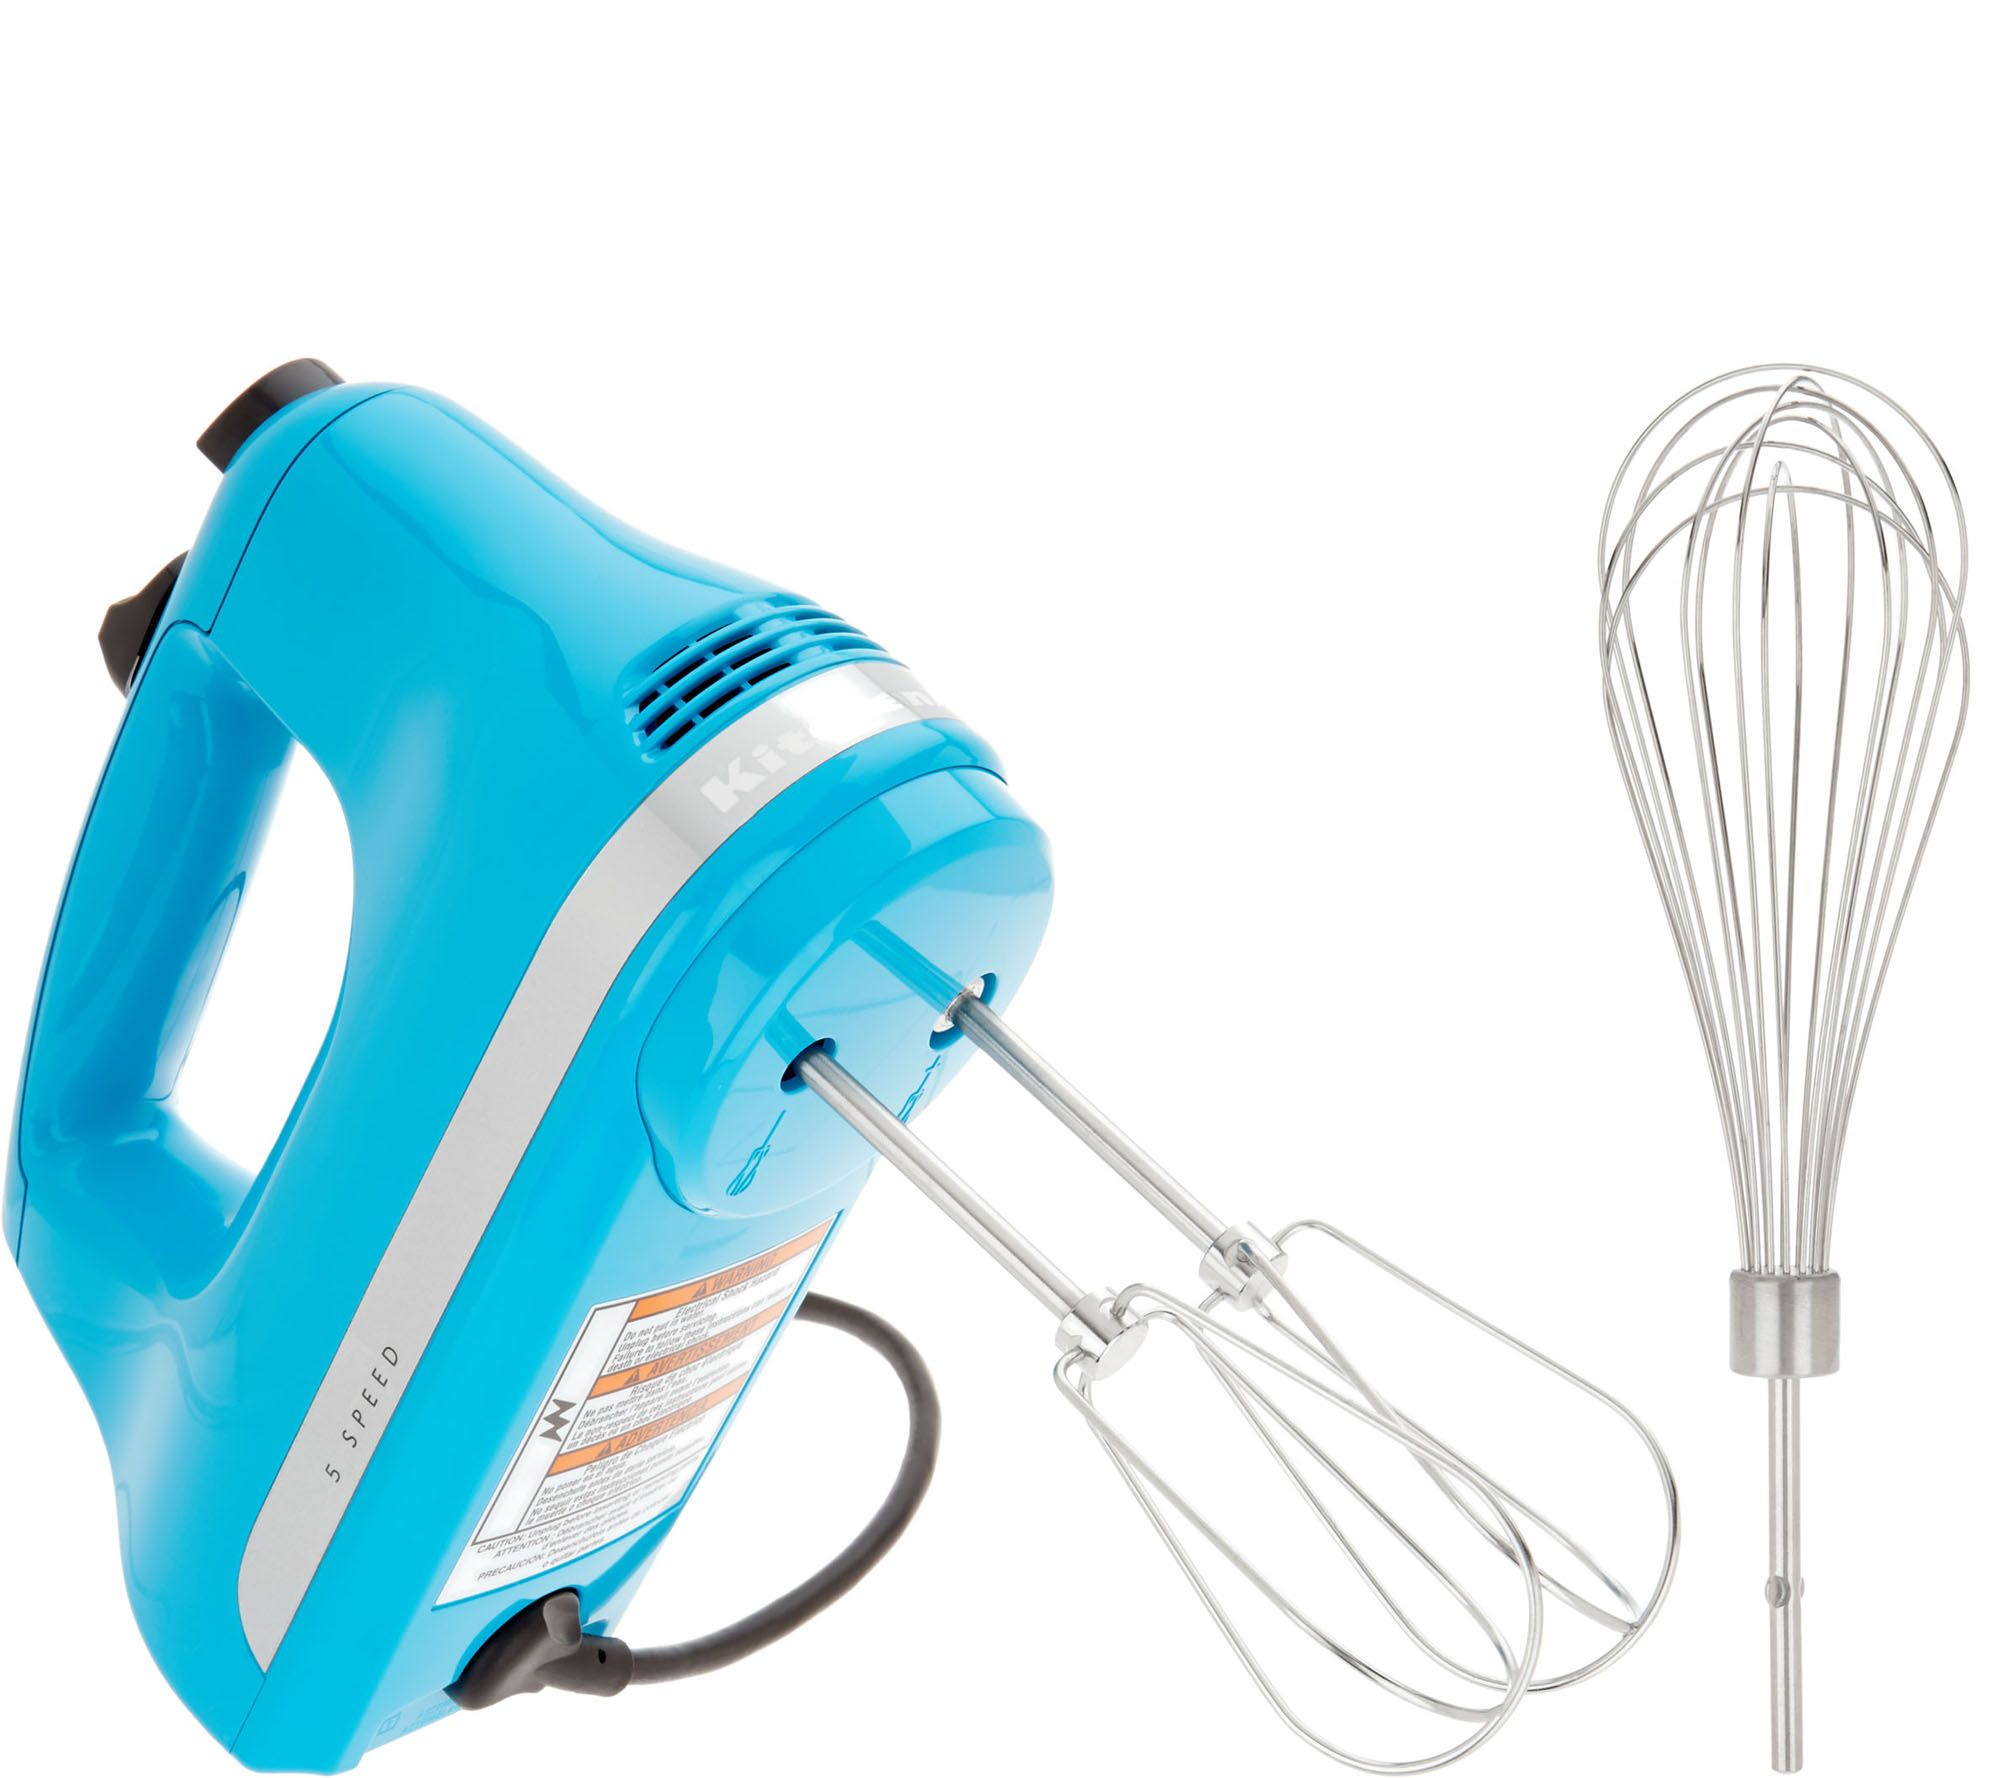 KitchenAid 5-Speed Ultra Power Hand Mixer w/ Wire Pro Whisk - Page 1 ...